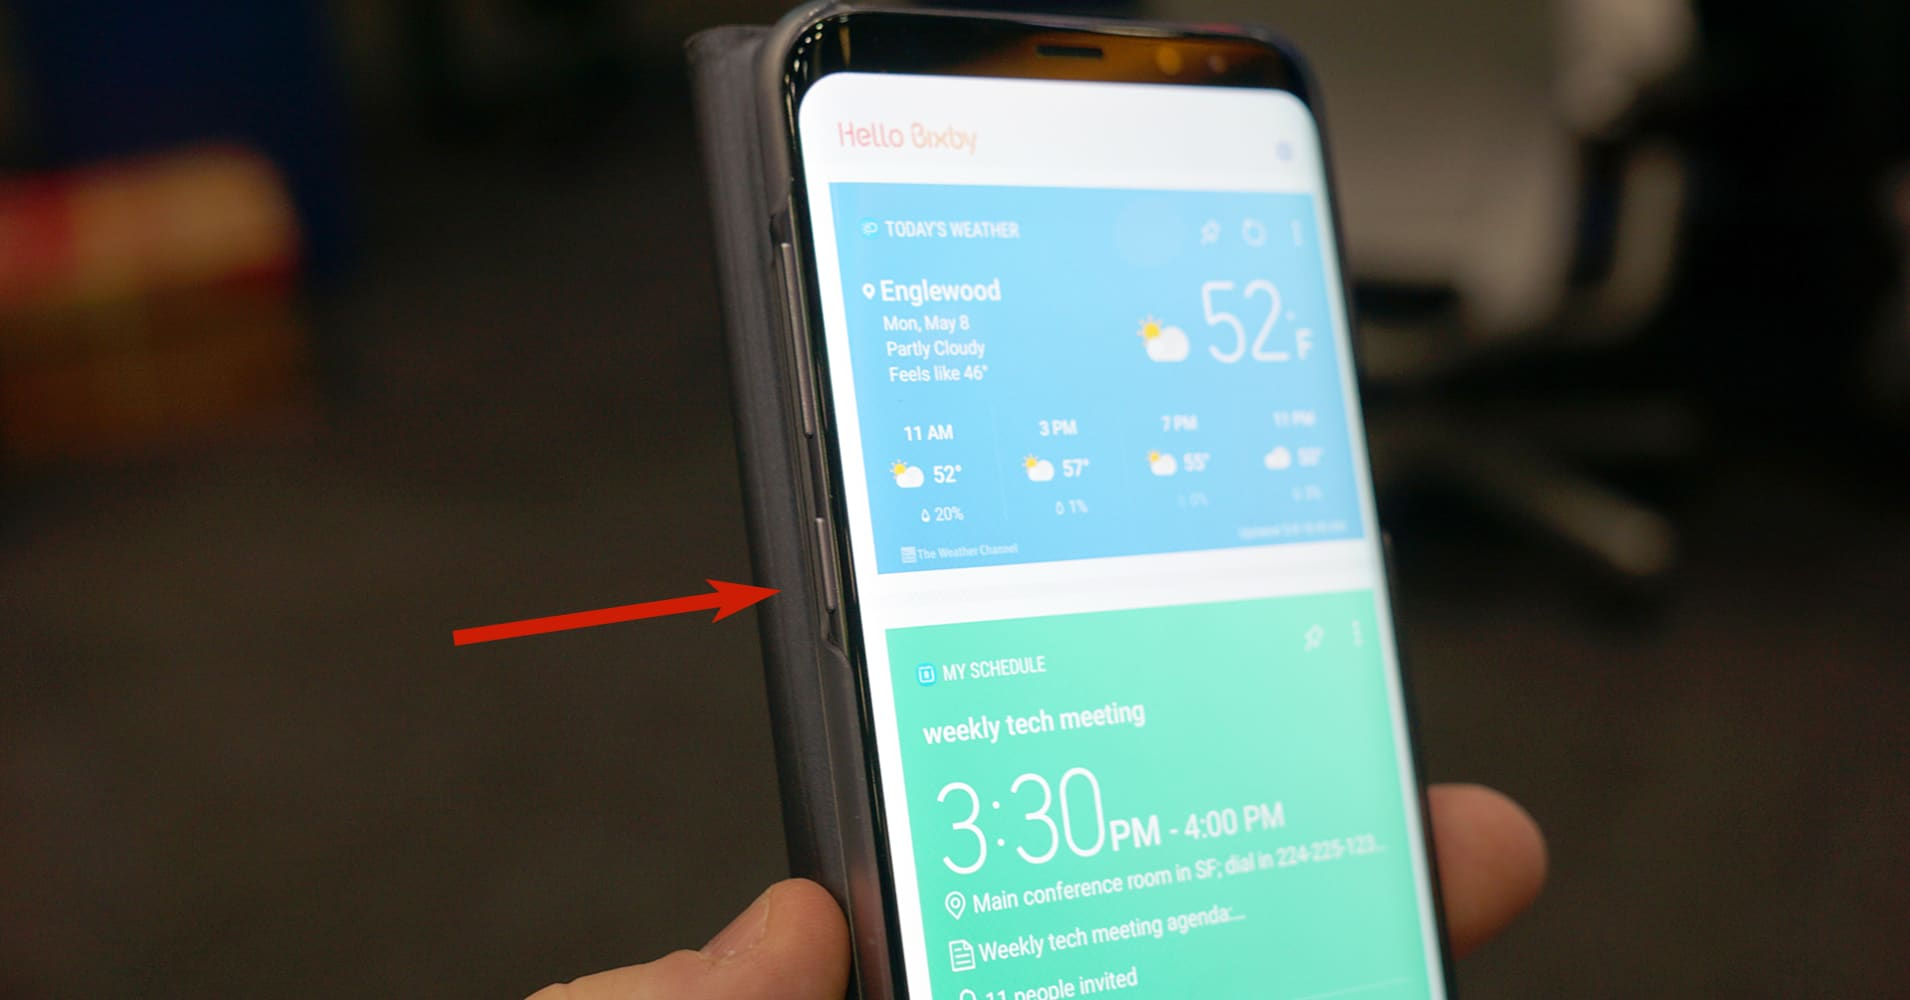 Samsung voice assistant Bixby expands to over 200 countries in battle with Amazon Alexa, Apple Siri